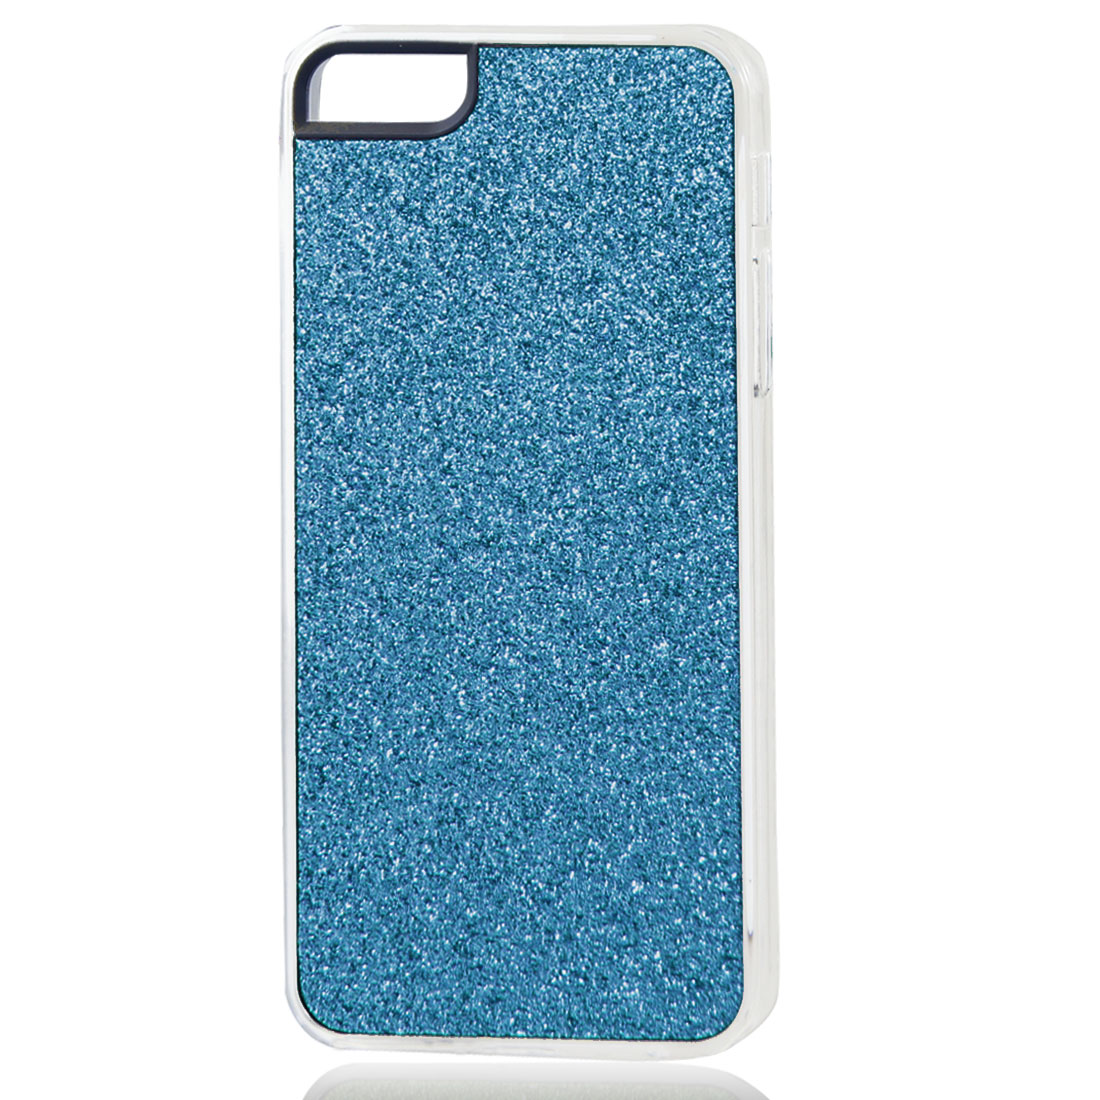 Blue Glitter Glittery Sparkly Bling Hard Back Case Cover for iPhone 5 5G